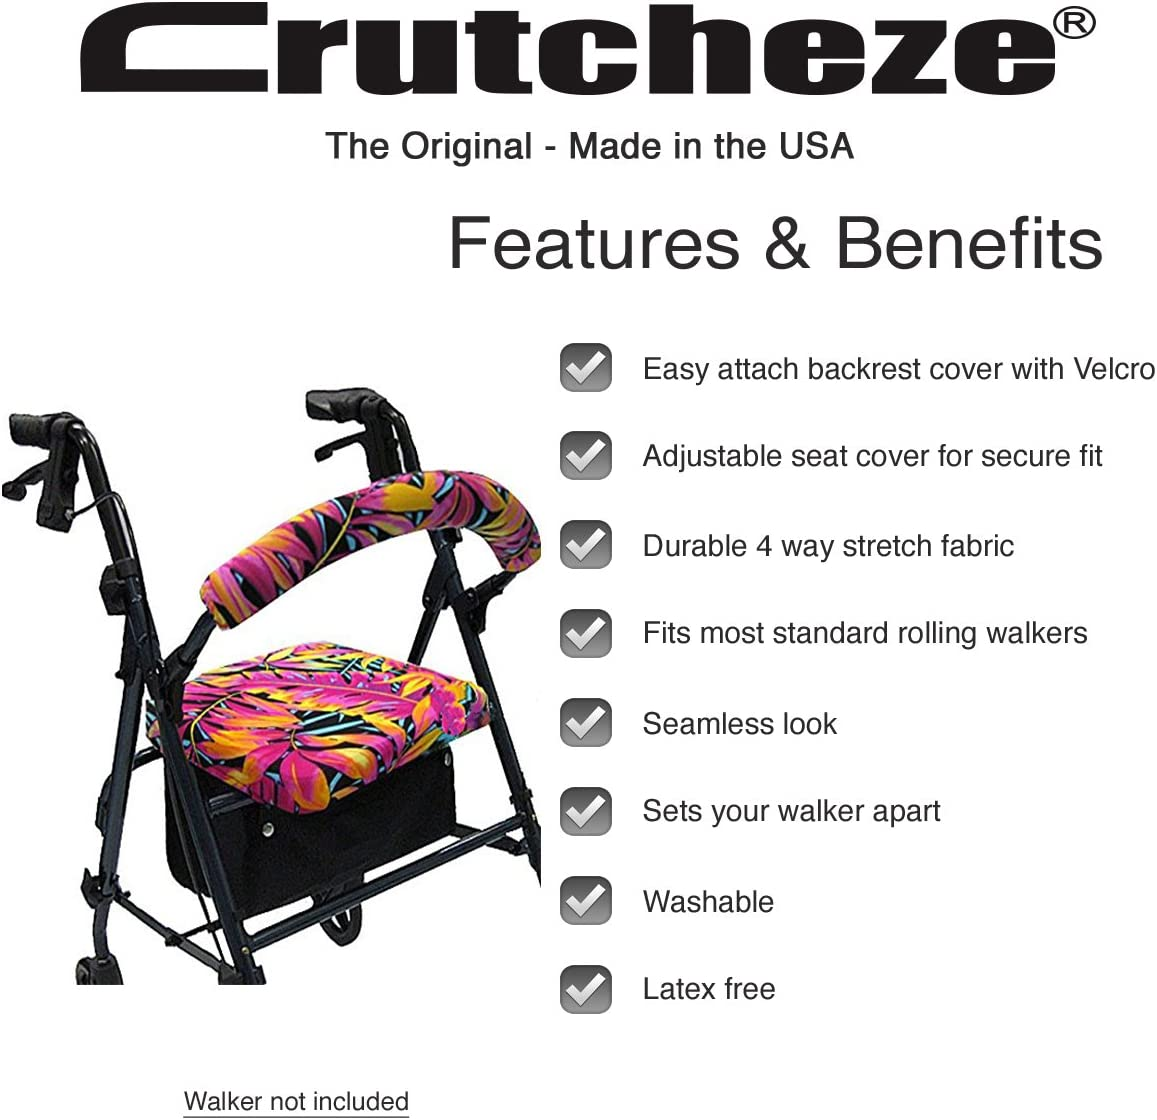 Crutcheze Hawaiian Tropical Leaves Rollator Walker Seat and Backrest Covers Designer Fashion Accessories Made in USA